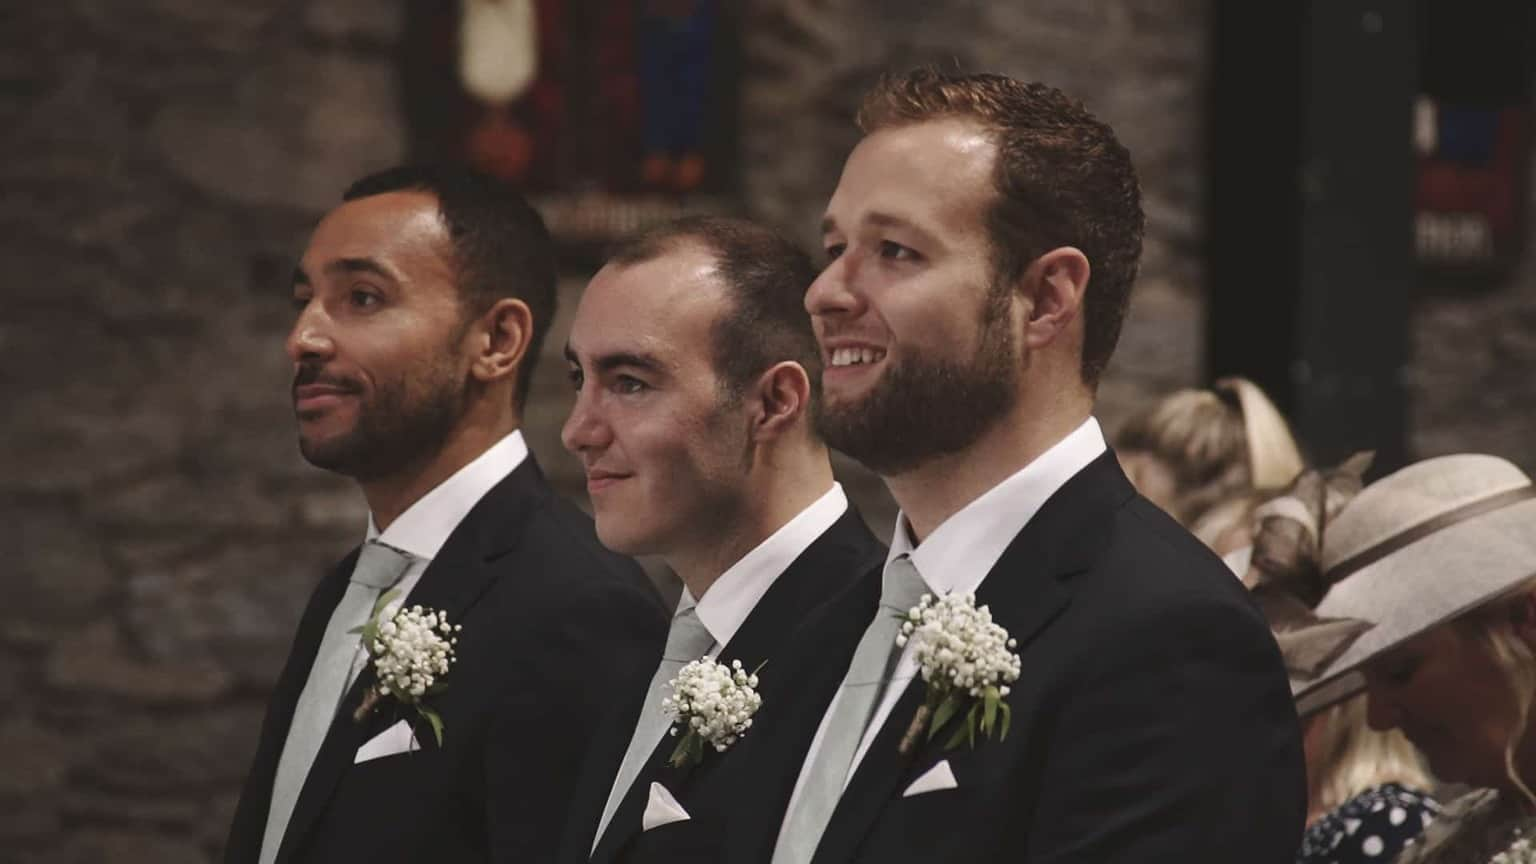 Grooms mans smiling when looking at newly marriage